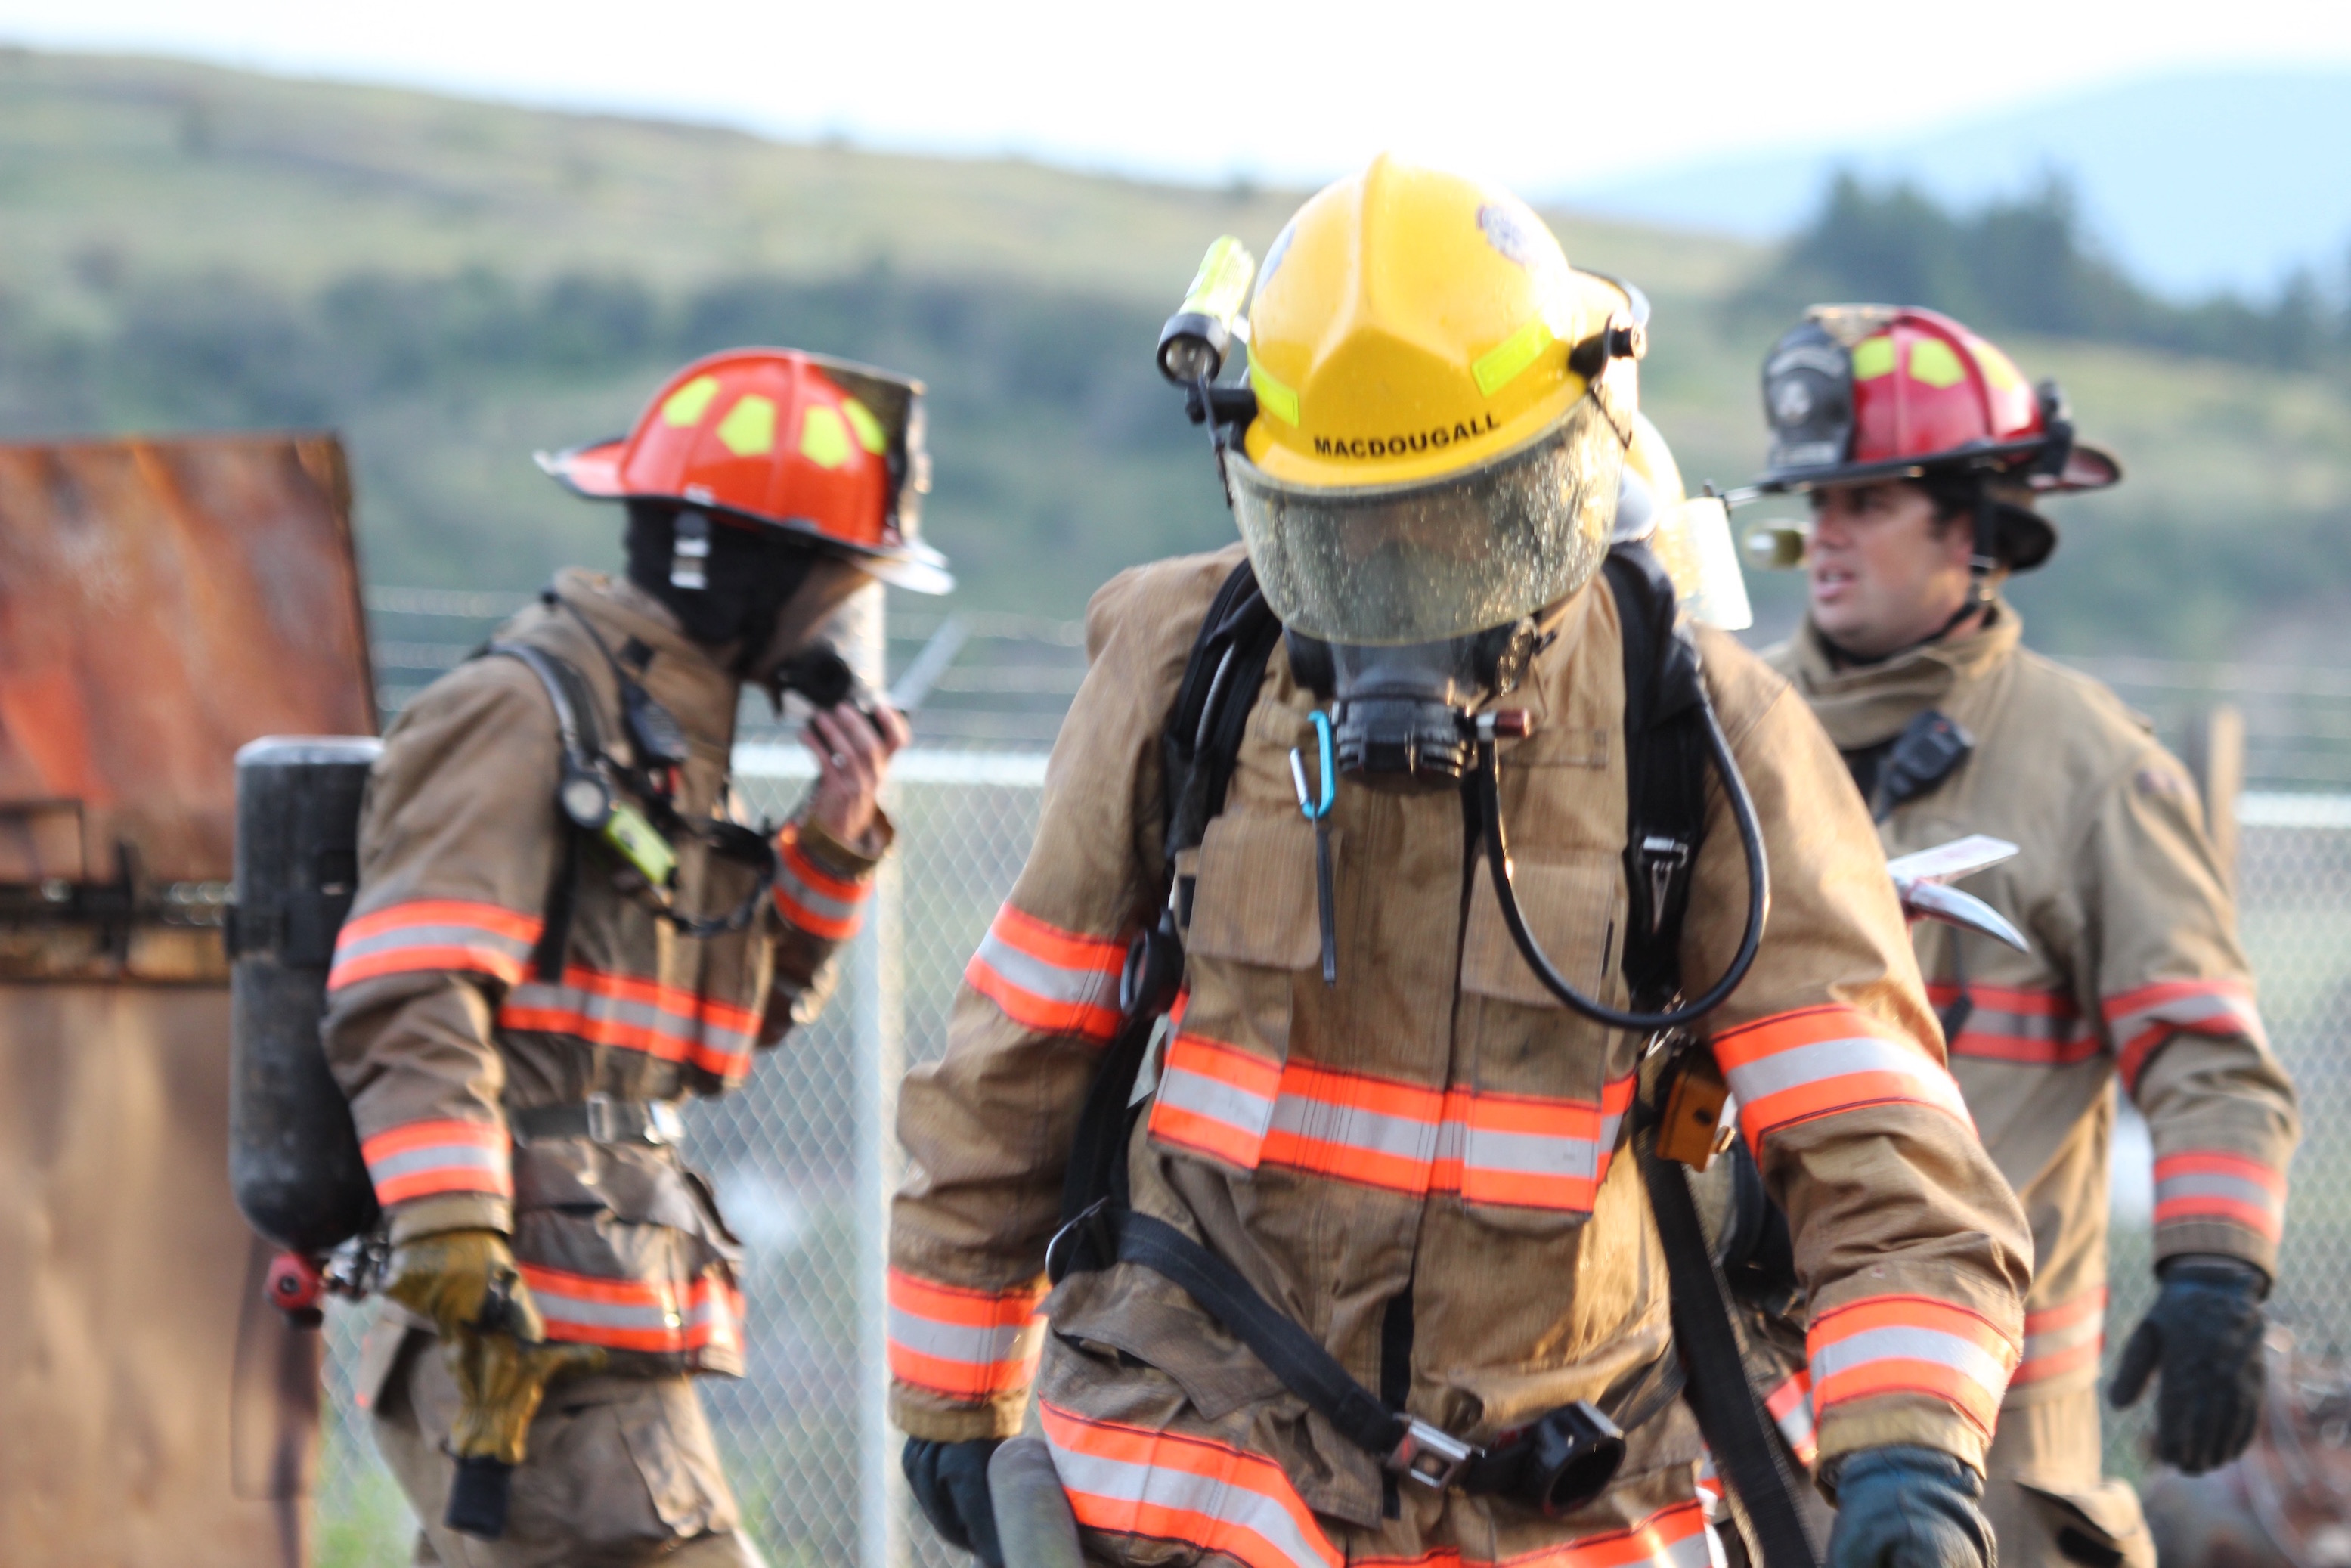 Training at Fire Training Centres